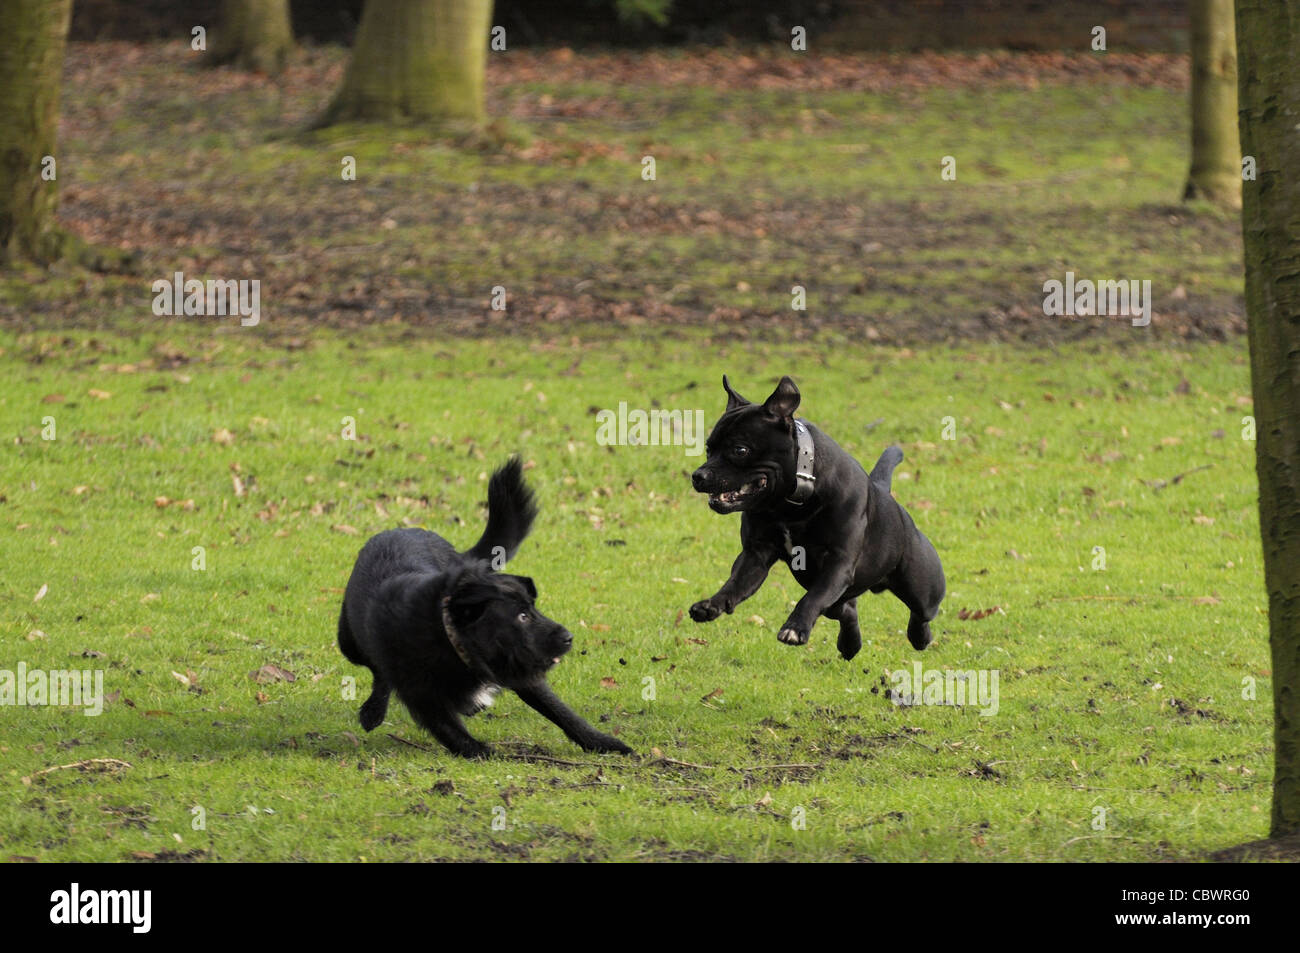 Two black dogs playing - Stock Image